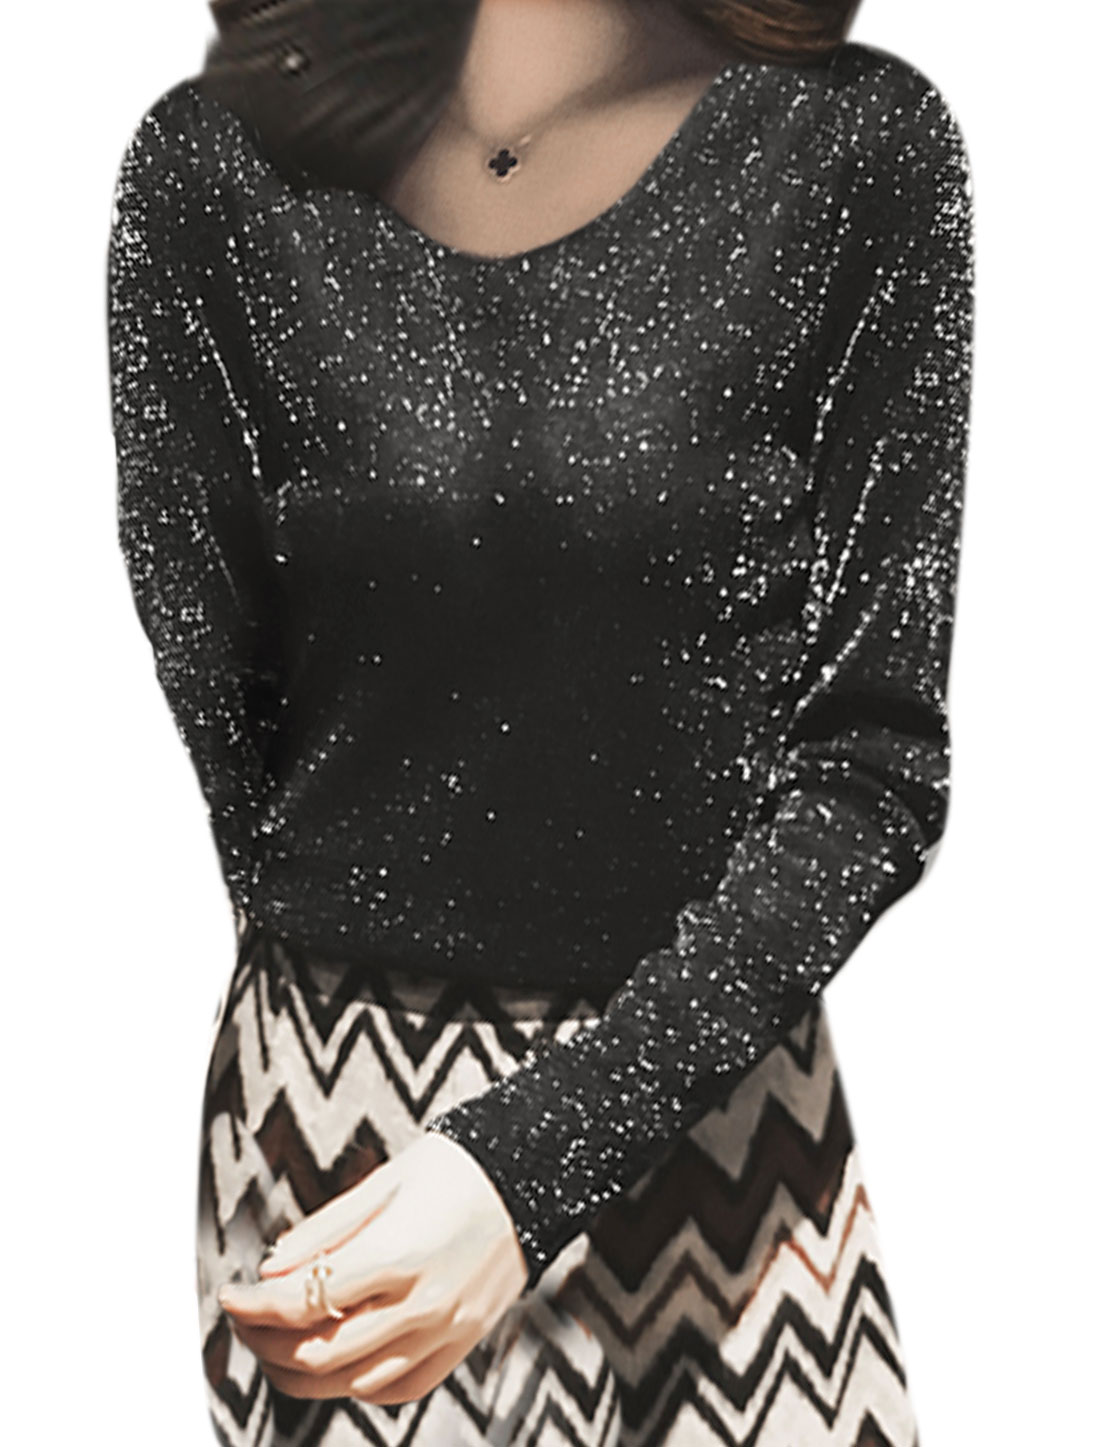 Women Round Neck Long Sleeves Bling Slim Fit Casual Tee Shirt Black XS